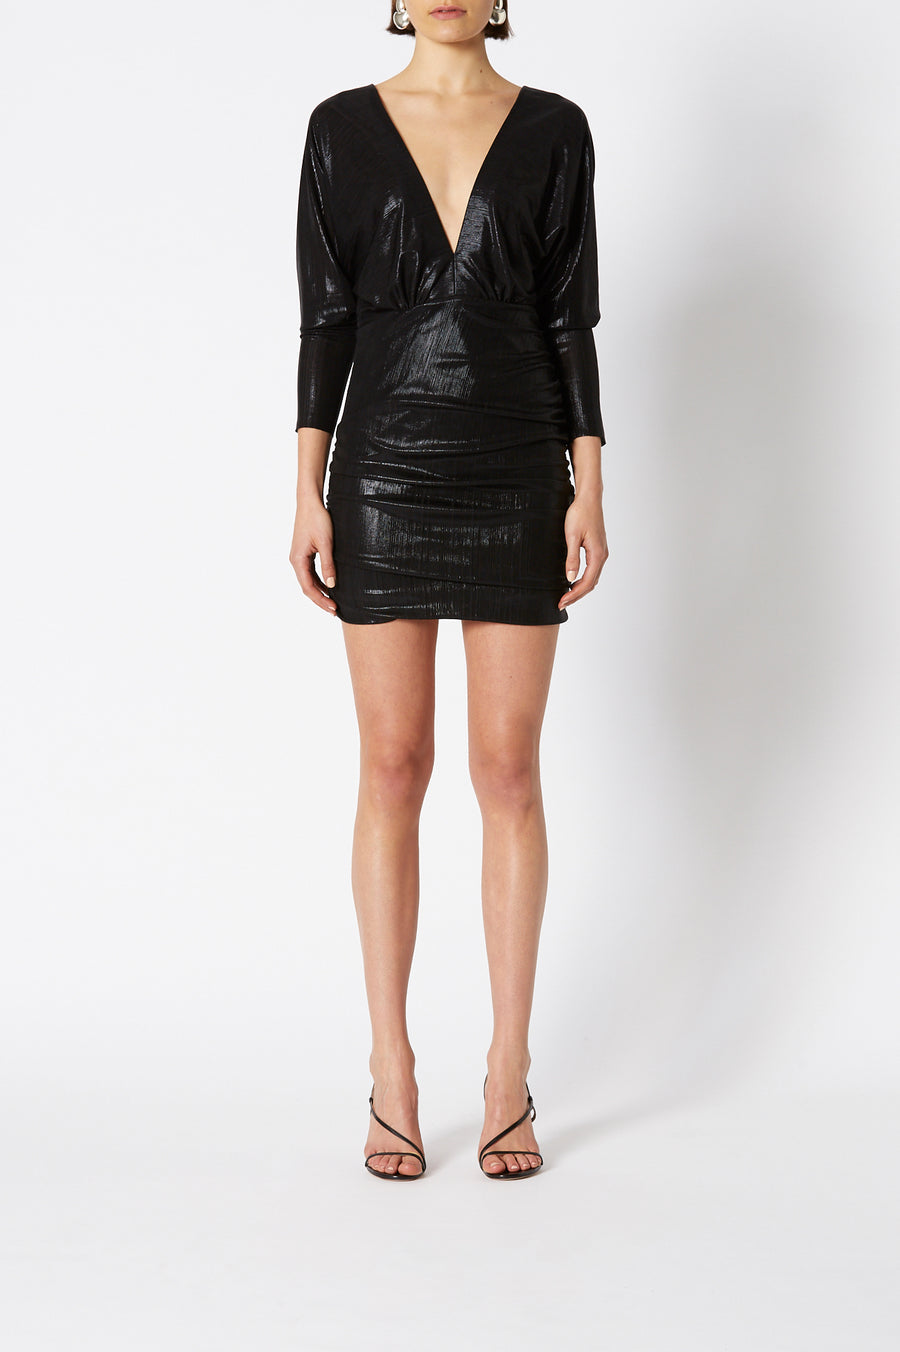 LACQUER JERSEY DRESS BLACK